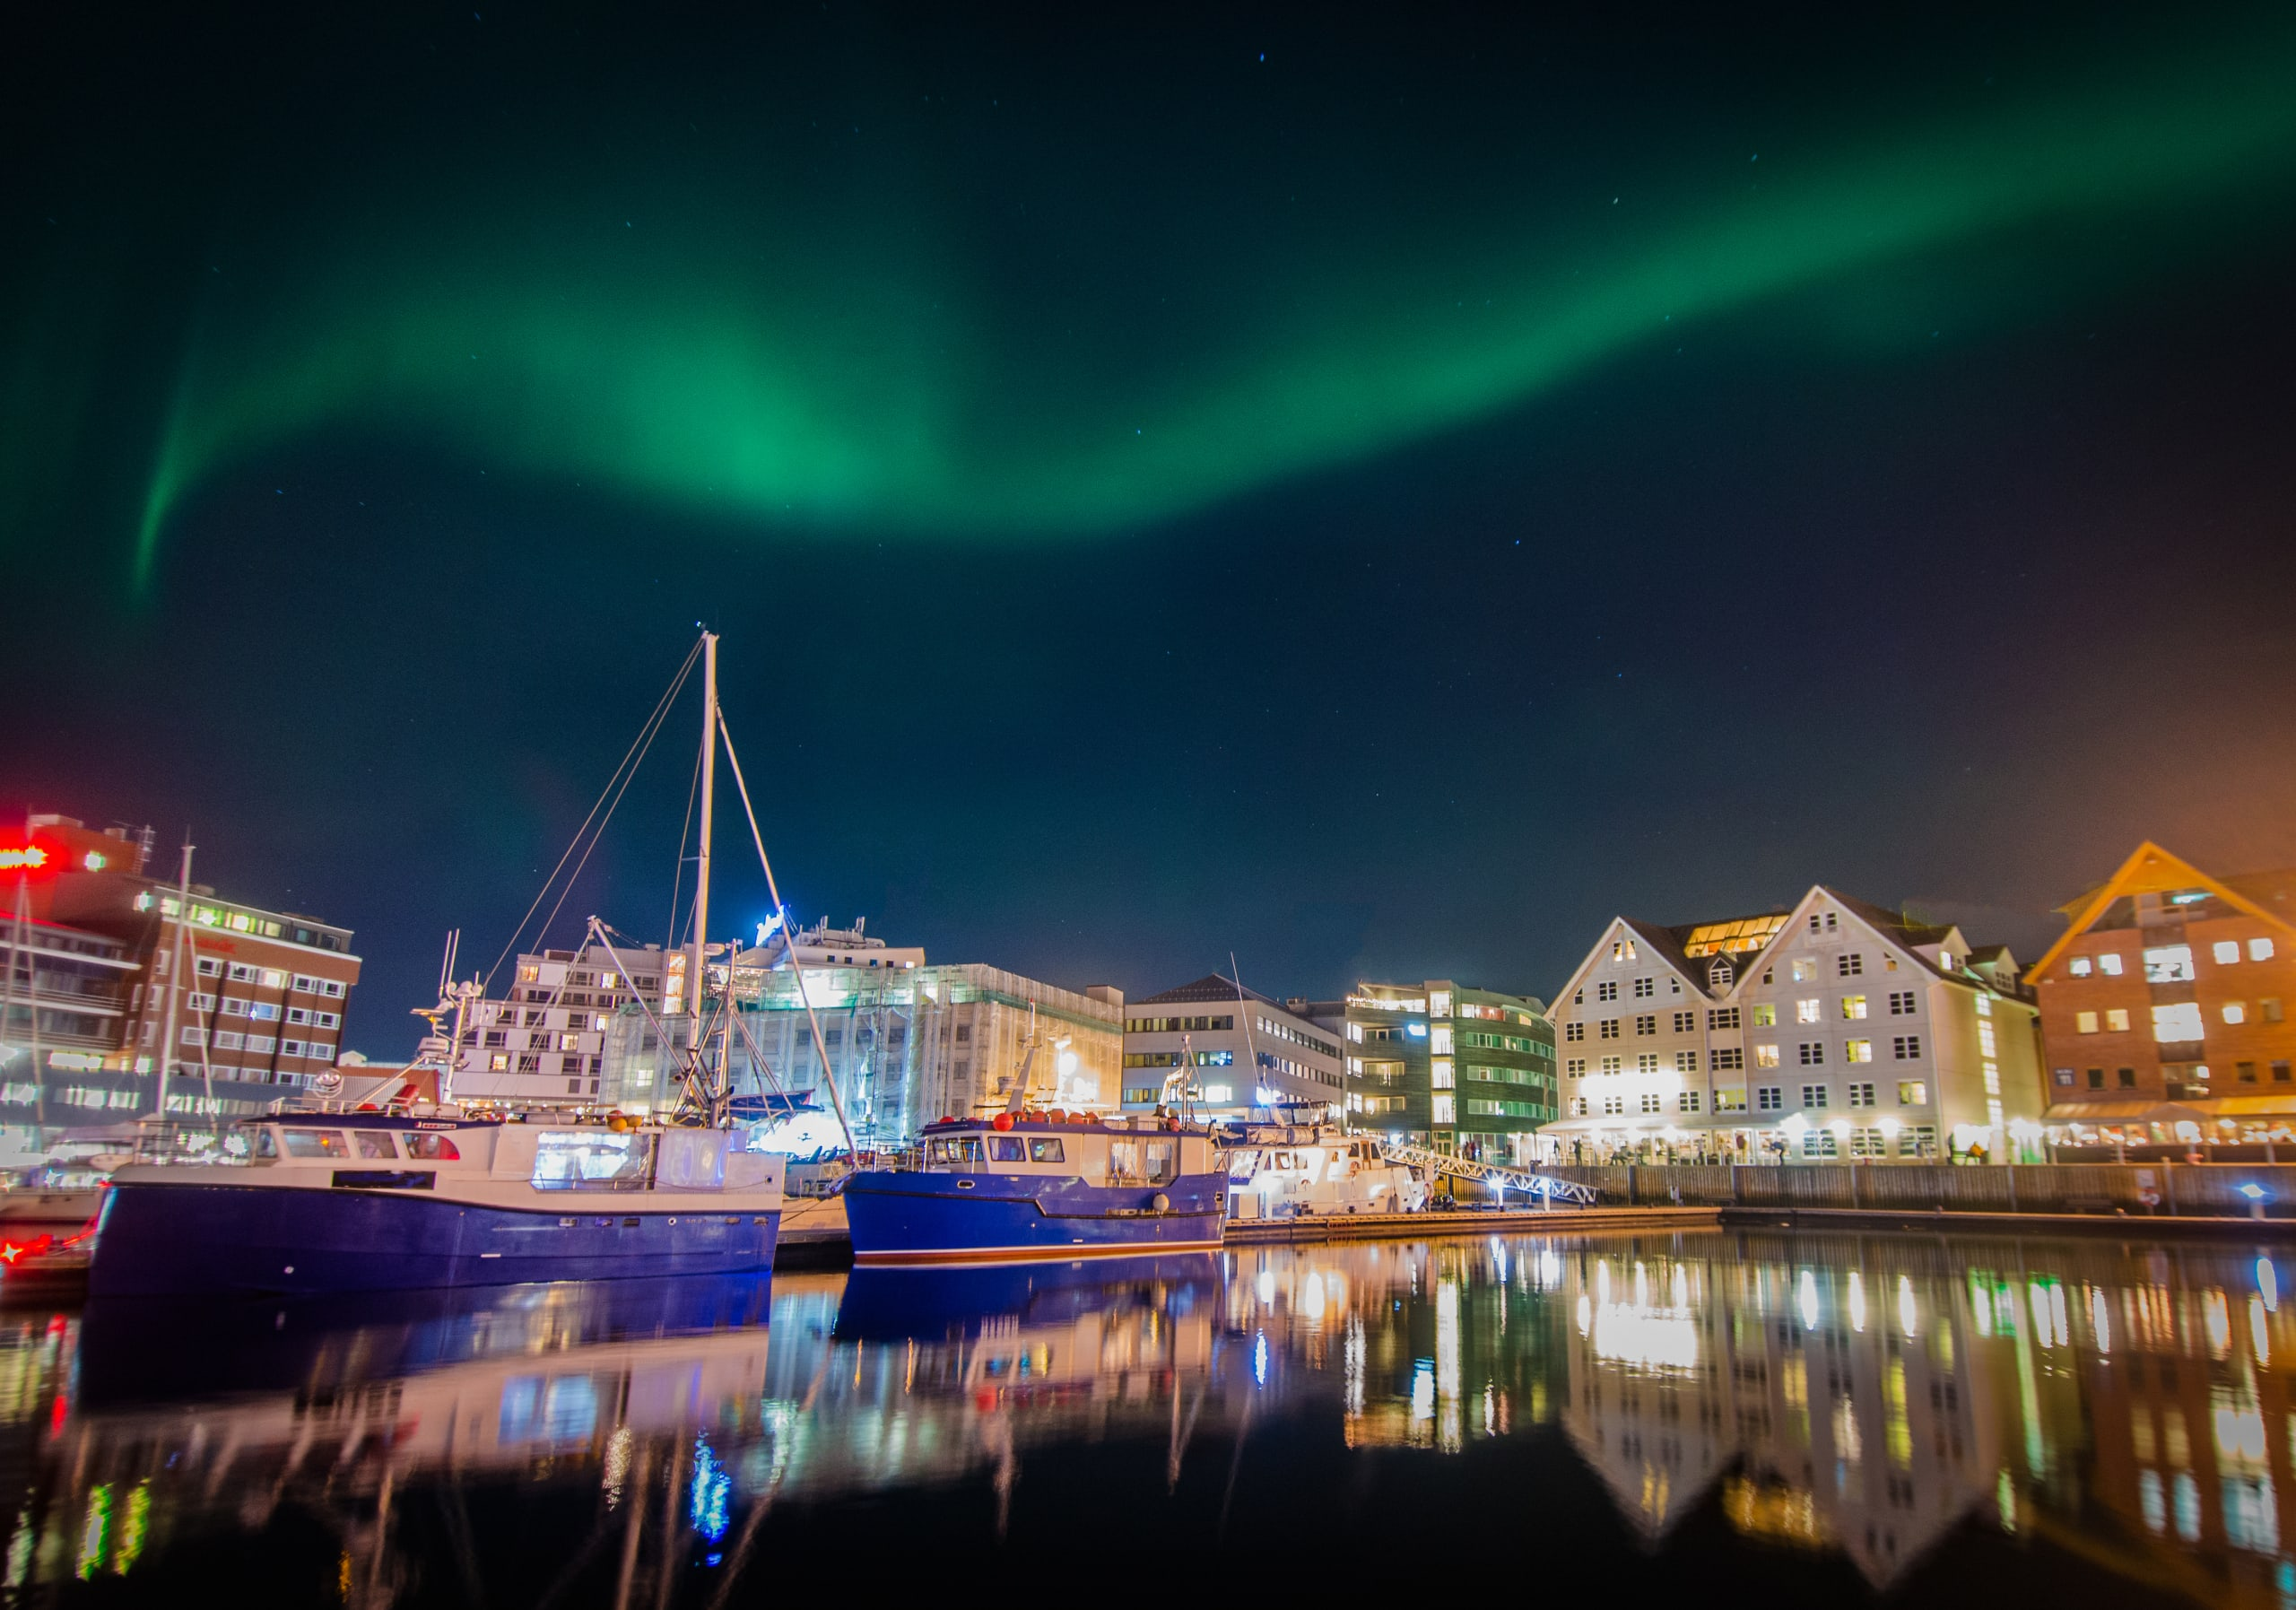 Northern lights over the waterfront of Tromsø